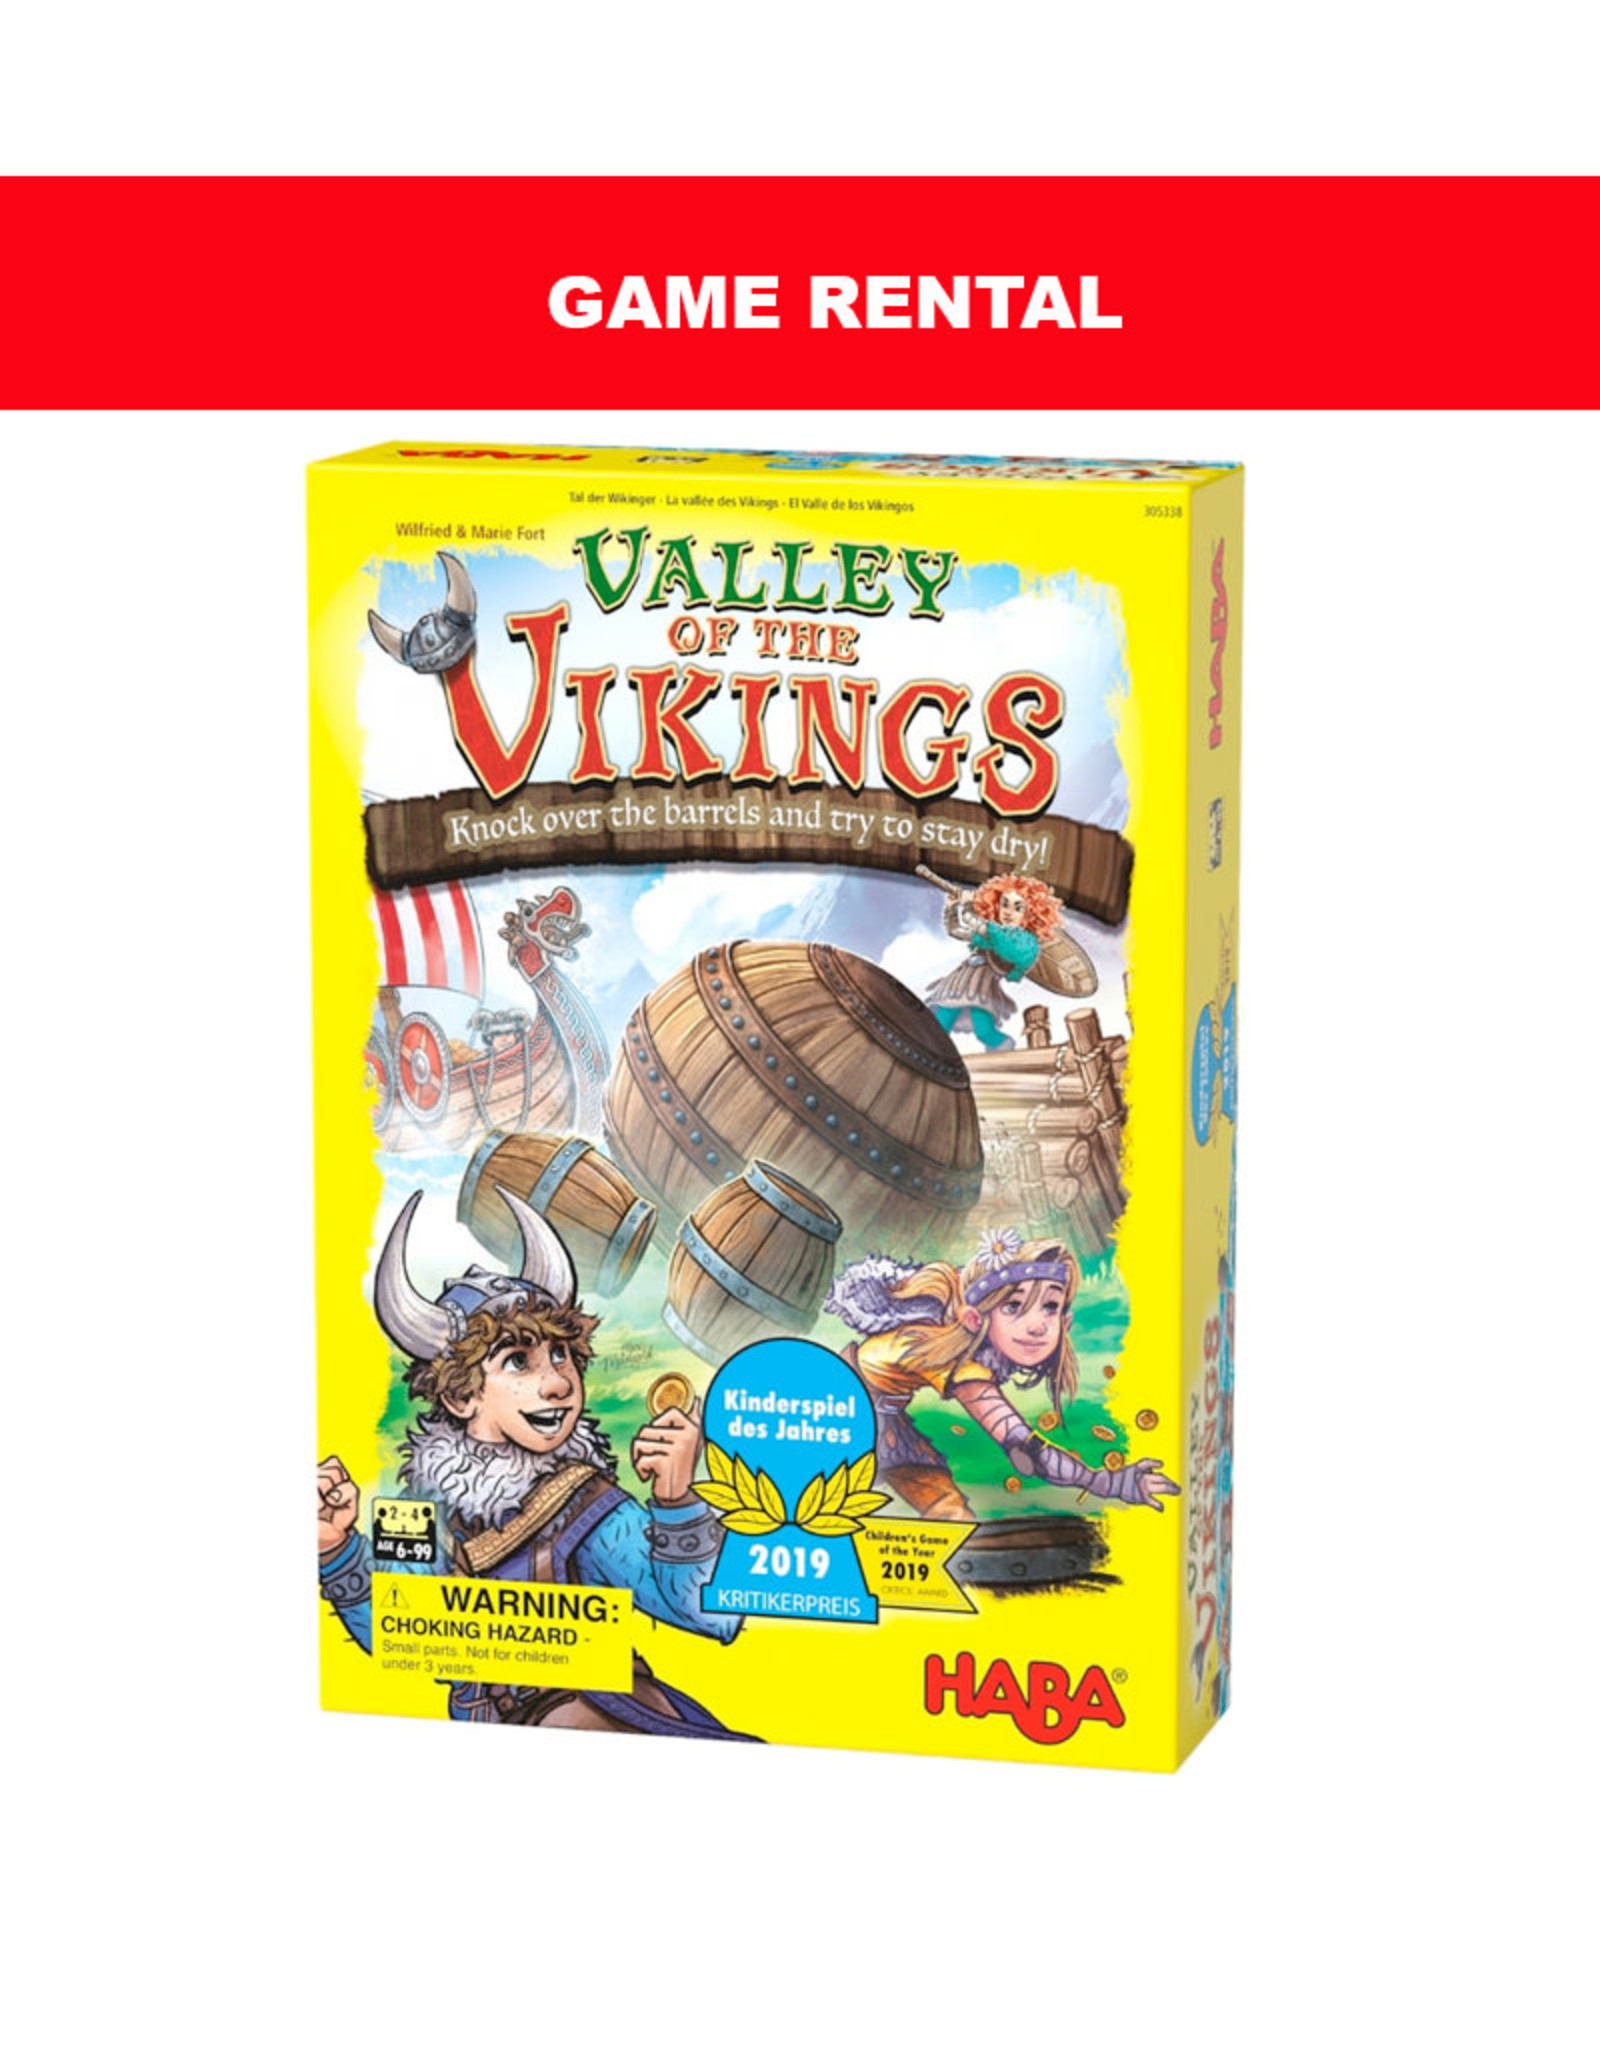 (RENT) Valley of the Vikings for a Day. Love It! Buy It!